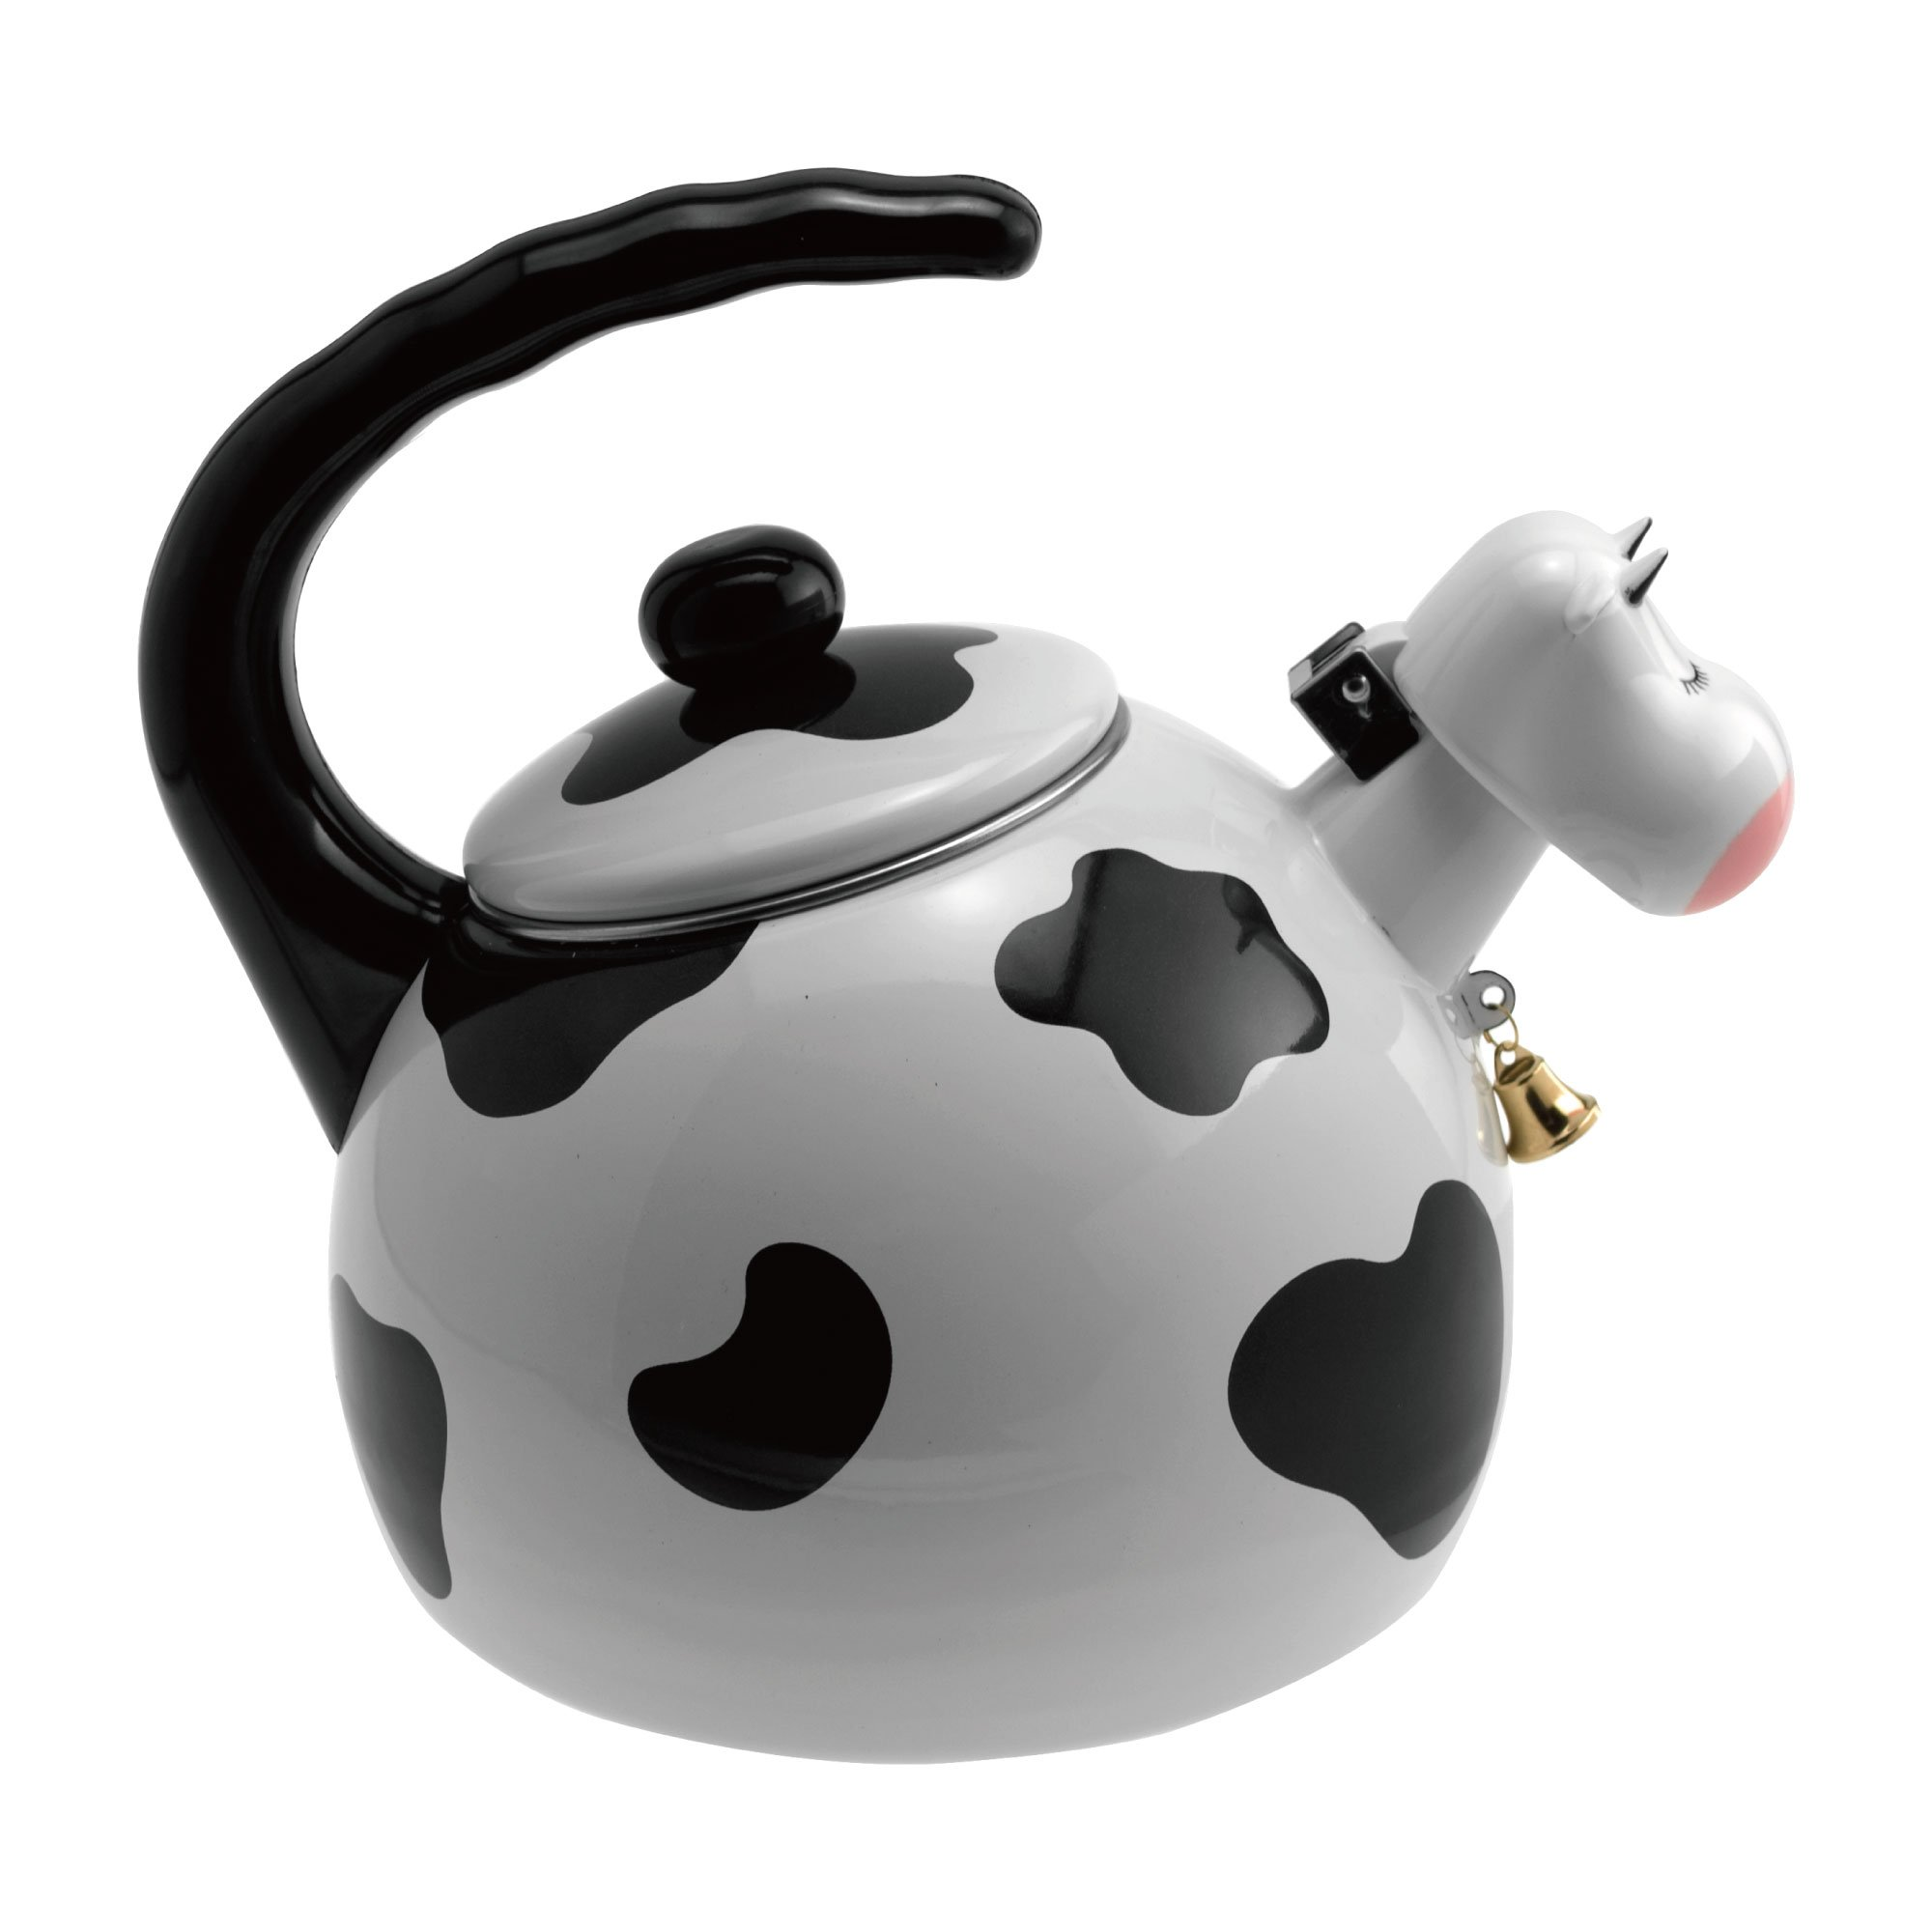 Supreme Housewares 71508 Cow Whistling Kettle, 2.5 quarts, White & Black by Supreme Housewares (Image #3)